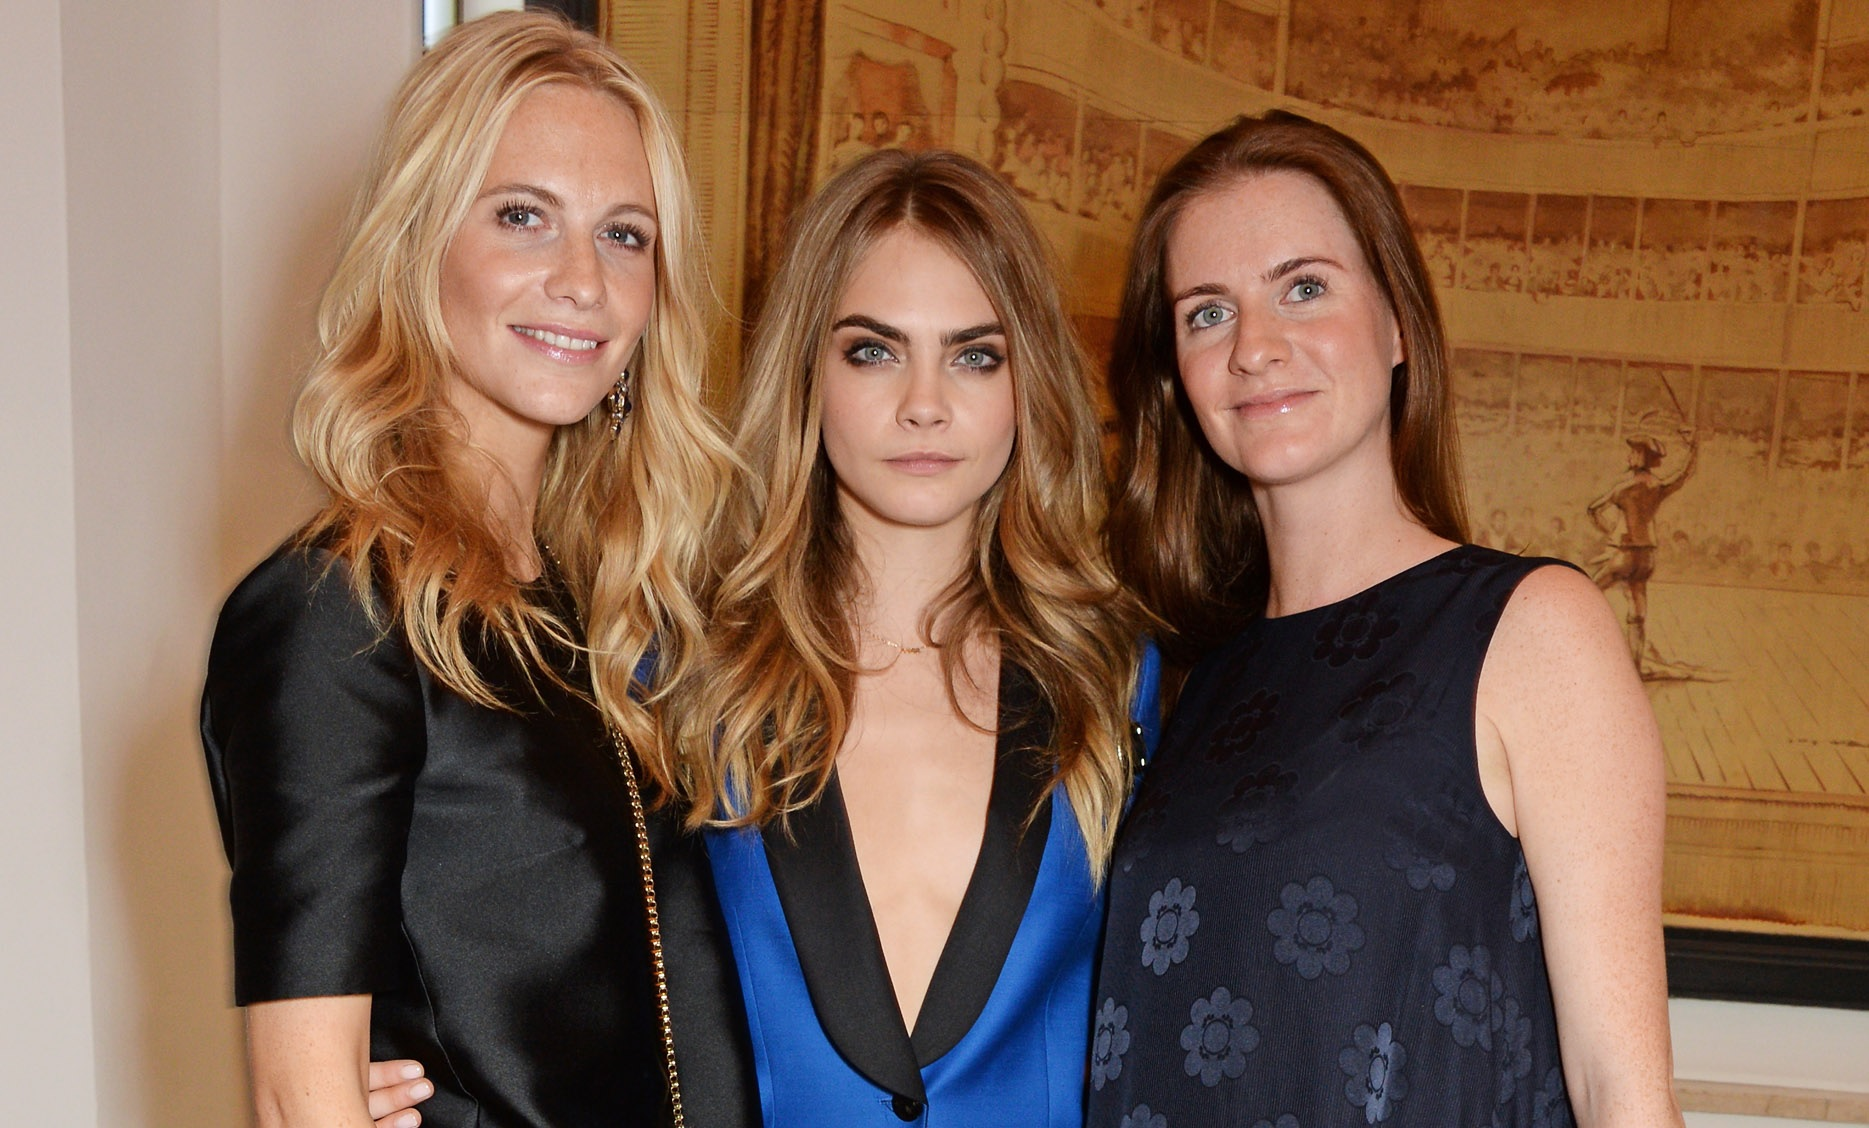 Cara Delevingne and sisters